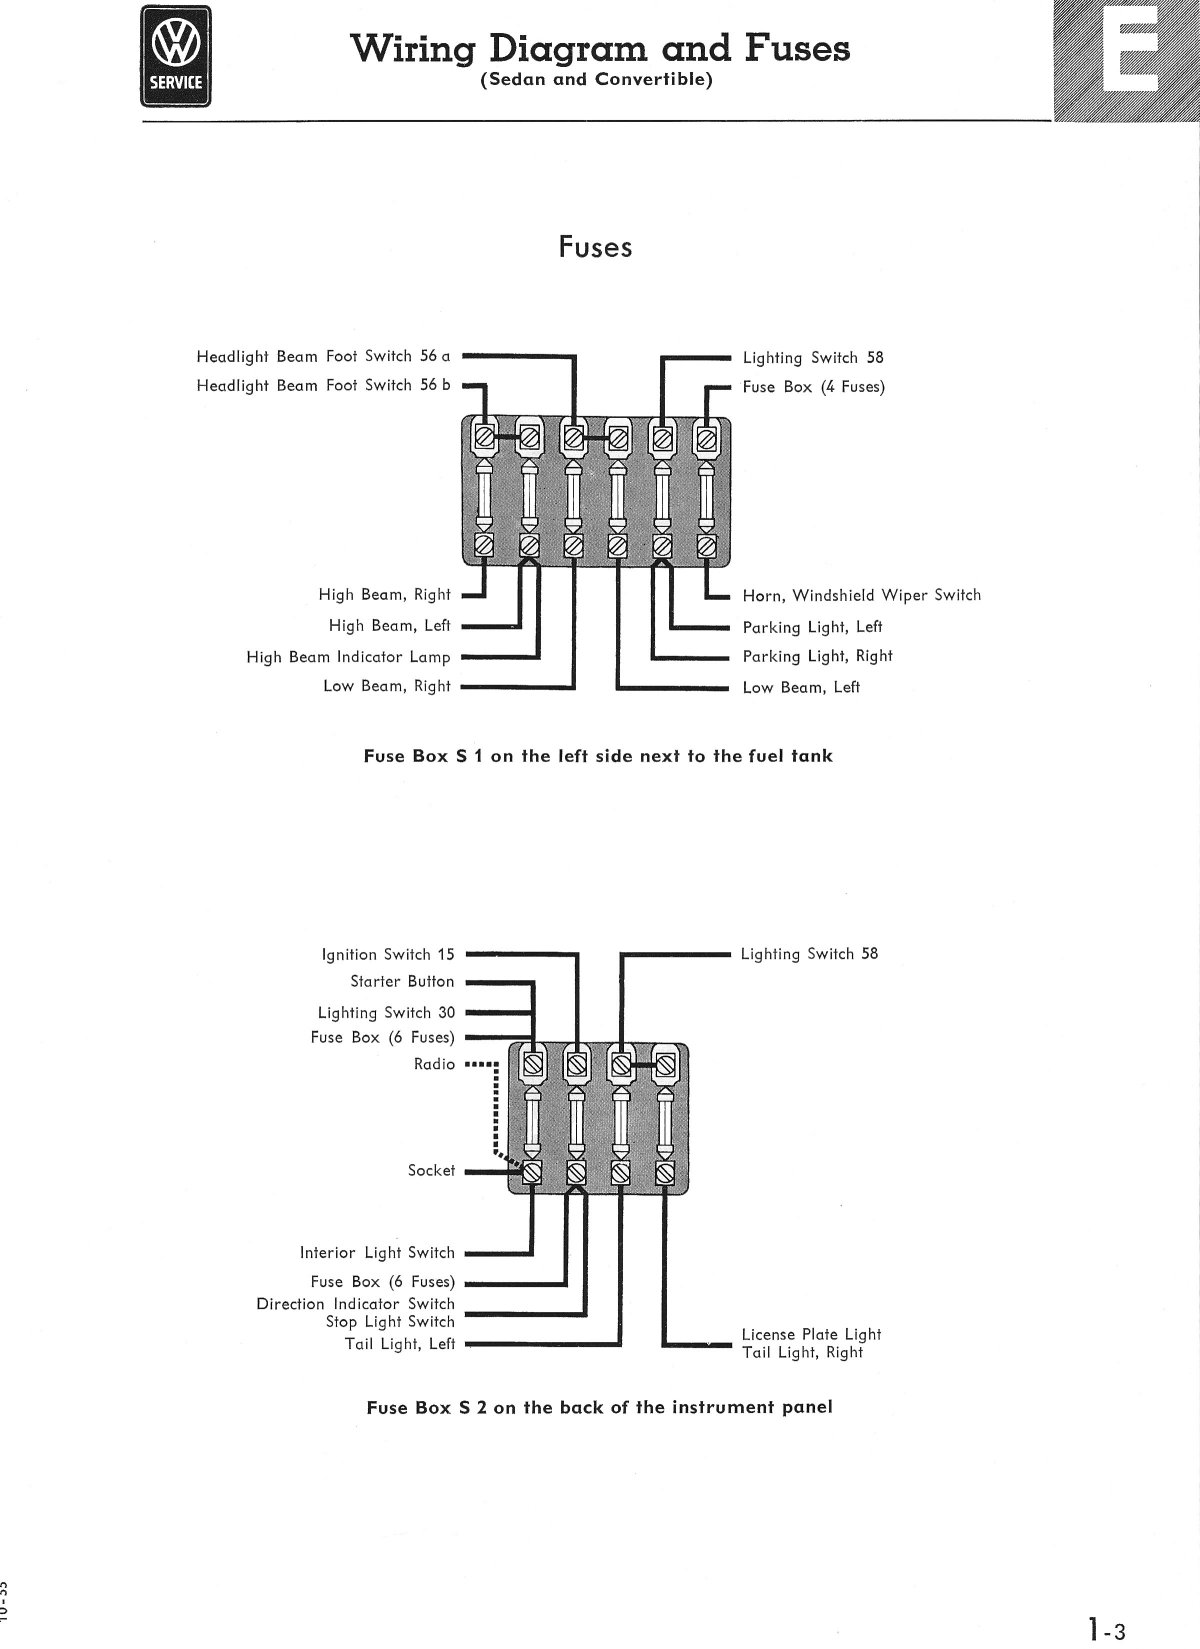 2013 Chevy Impala Wiring Diagram Will Be A Thing Engine Old Fuse Box 27 Images Schematic 2014